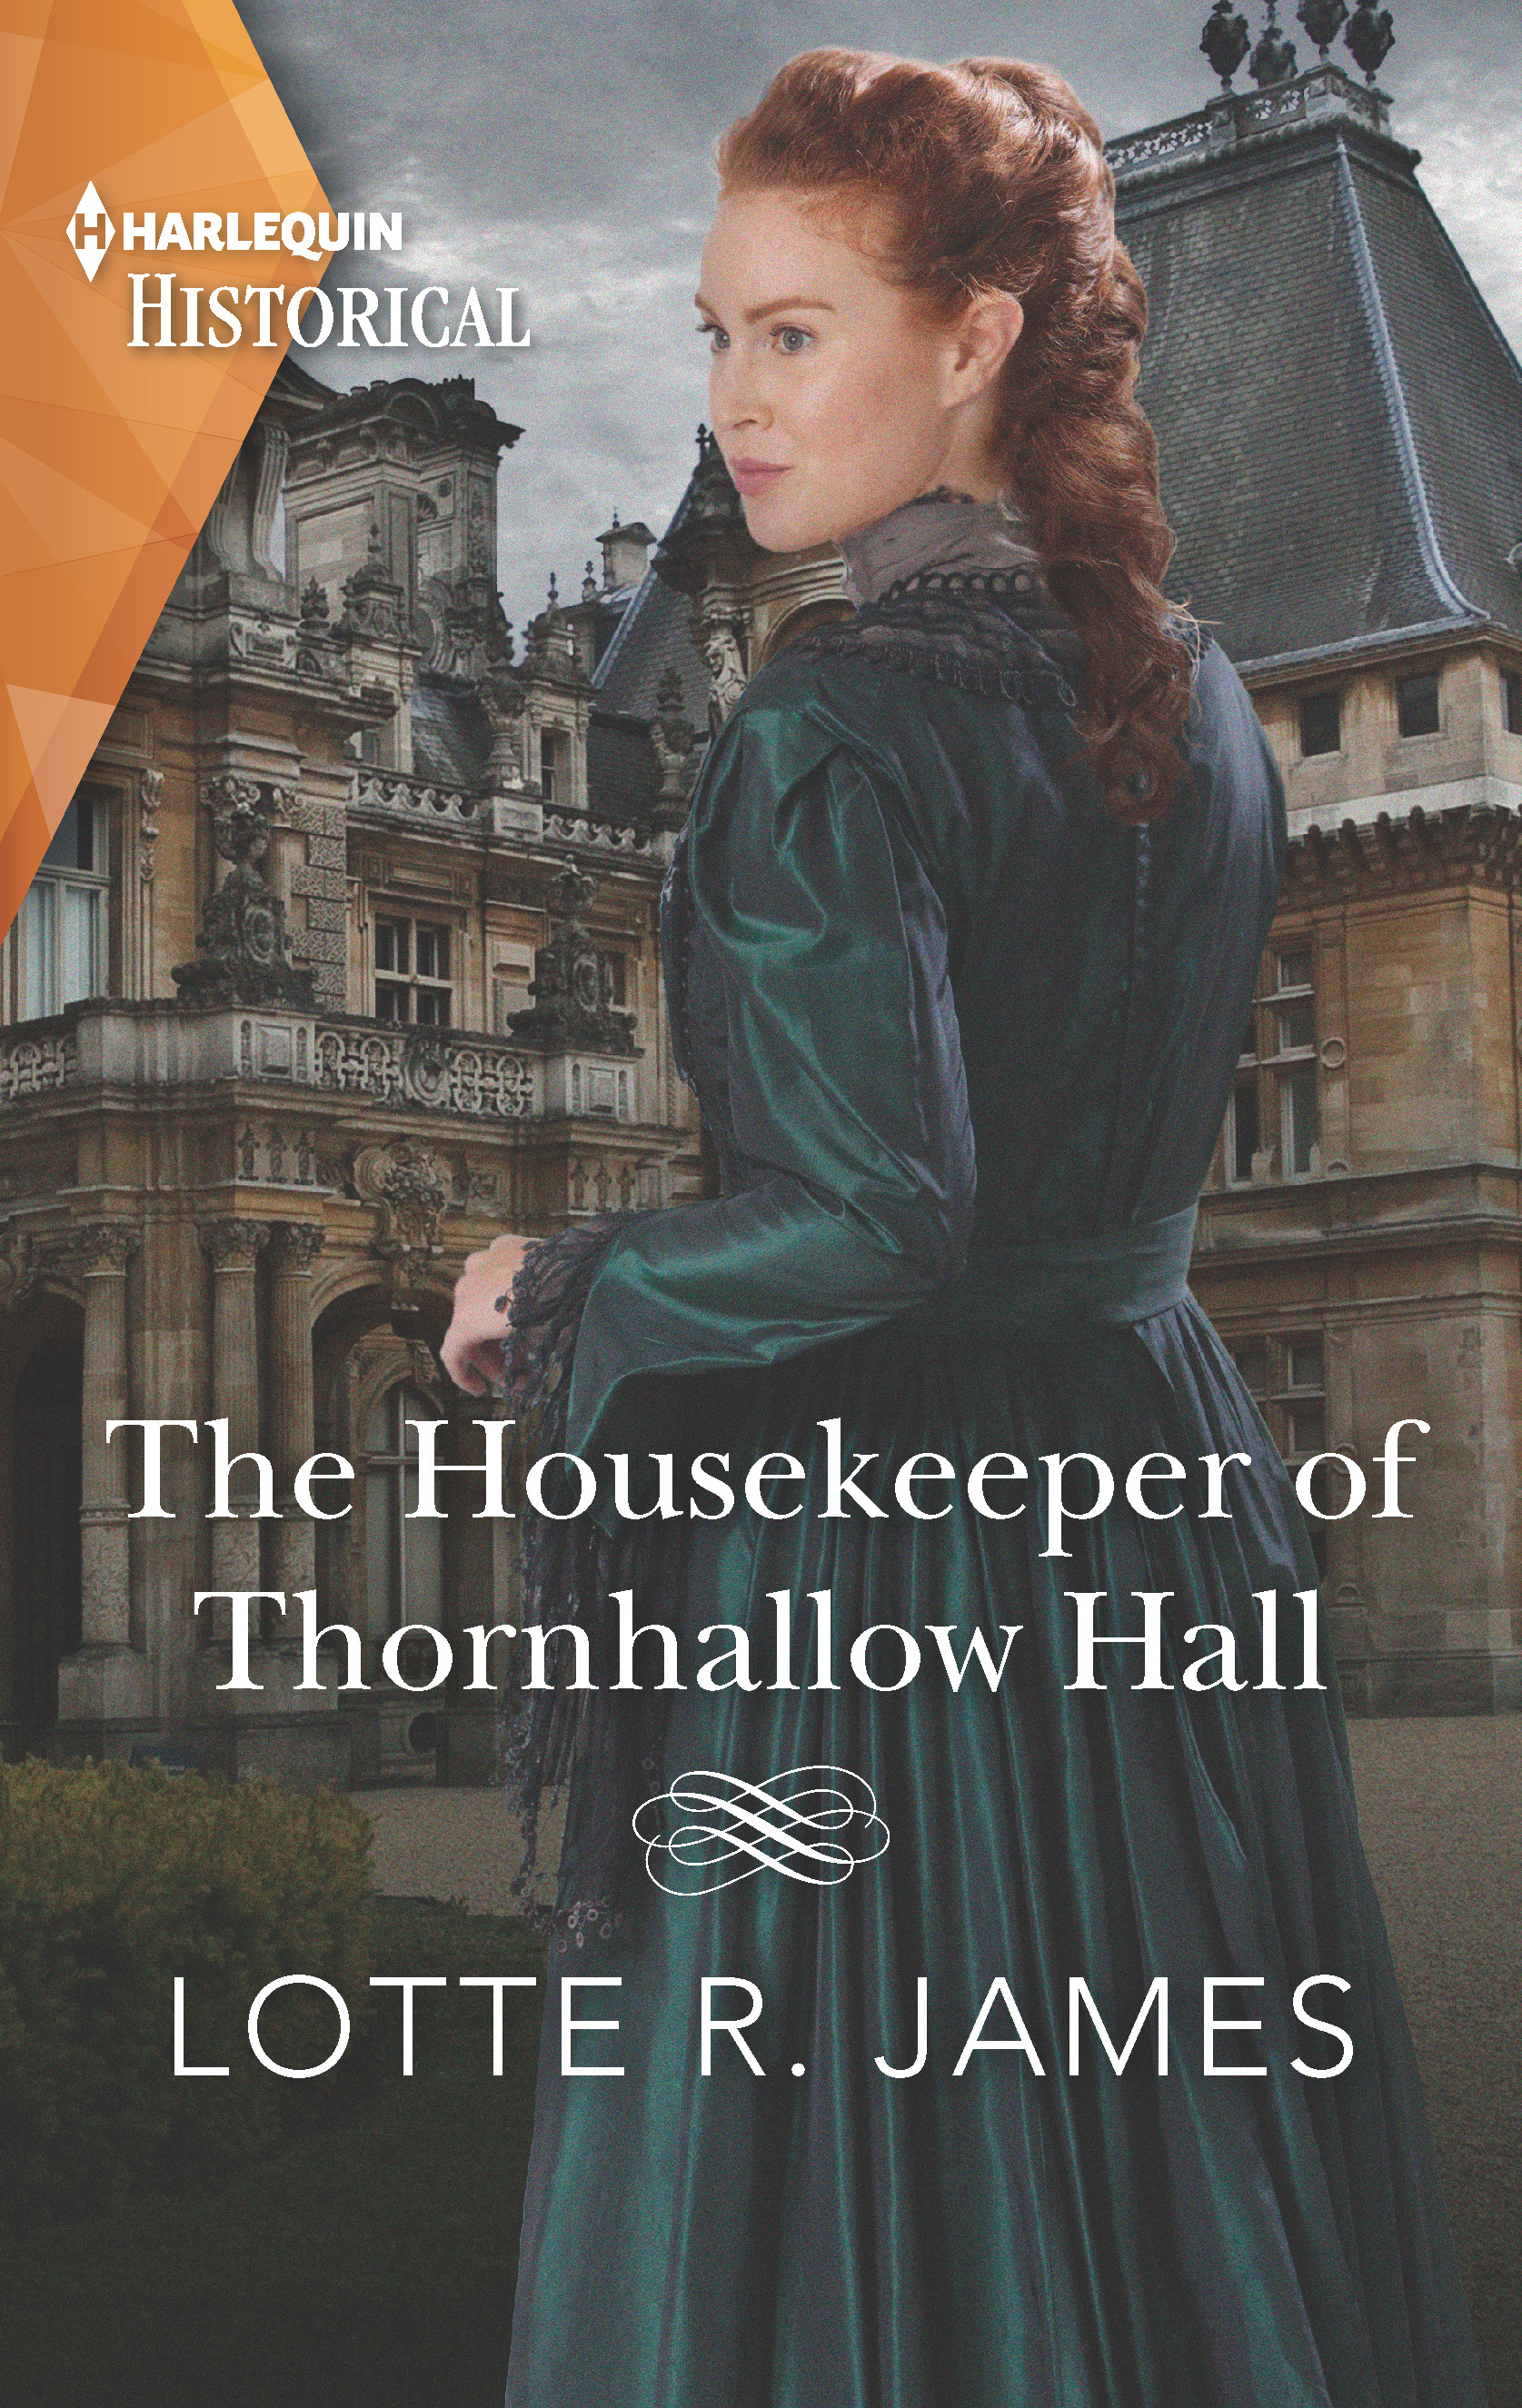 The Housekeeper of Thornhallow Hall: A gripping gothic debut by Lotte R. James